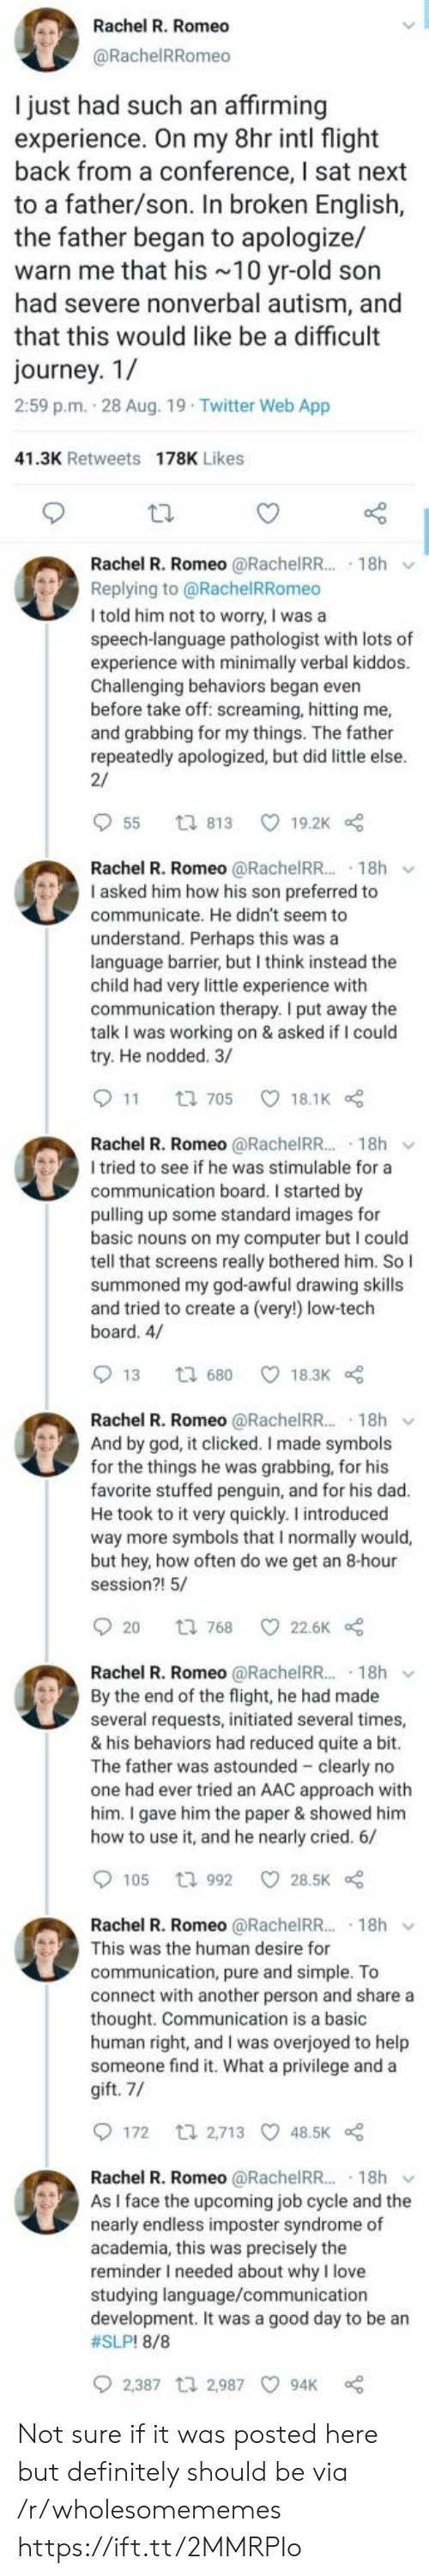 Dad, Definitely, and God: Rachel R. Romeo  @RachelRRomeo  I just had such an affirming  experience. On my 8hr intl flight  back from a conference, I sat next  to a father/son. In broken English,  the father began to apologize/  warn me that his 10 yr-old son  had severe nonverbal autism, and  that this would like be a difficult  journey. 1/  2:59 p.m. 28 Aug. 19 Twitter Web App  41.3K Retweets 178K Likes  Rachel R. Romeo @RachelRR.. 18h  Replying to@RachelRRomeo  I told him not to worry, I was a  speech-language pathologist with lots of  experience with minimally verbal kiddos.  Challenging behaviors began even  before take off: screaming, hitting me,  and grabbing for my things. The father  repeatedly apologized, but did little else.  2/  55  19.2K  ti 813  Rachel R. Romeo @RachelR.. 18h  I asked him how his son preferred to  communicate. He didn't seem to  understand. Perhaps this was a  language barrier, but I think instead the  child had very little experience with  communication therapy. I put away the  talk I was working on & asked if I could  try. He nodded. 3/  11  18.1K  t 705  Rachel R. Romeo @RachelR... 18h  I tried to see if he was stimulable for a  communication board. I started by  pulling up some standard images for  basic nouns on my computer but I could  tell that screens really bothered him. So I  summoned my god-awful drawing skills  and tried to create a (very!) low-tech  board. 4/  13  18.3K  t 680  Rachel R. Romeo @RachelRR.. 18h  And by god, it clicked. I made symbols  for the things he was grabbing, for his  favorite stuffed penguin, and for his dad.  He took to it very quickly. I introduced  way more symbols that I normally would,  but hey, how often do we get an 8-hour  session?! 5/  20  22.6K  t 768  Rachel R. Romeo @RachelRR.. 18h  By the end of the flight, he had made  several requests, initiated several times,  & his behaviors had reduced quite a bit.  The father was astounded clearly no  one had ever tried an AAC approach with  him. I gave him the paper & showed him  how to use it, and he nearly cried. 6/  105  28.5K  t 992  Rachel R. Romeo @RachelRR.. 18h  This was the human desire for  communication, pure and simple. To  connect with another person and share a  thought. Communication is a basic  human right, and I was overjoyed to help  someone find it. What a privilege and a  gift. 7/  172  t 2,713 48.5K  Rachel R. Romeo @RachelRR..  As I face the upcoming job cycle and the  nearly endless imposter syndrome of  academia, this was precisely the  reminder I needed about why I love  studying language/communication  development. It was a good day to be an  #SLP! 8/8  18h  2,387 t 2,987  94K Not sure if it was posted here but definitely should be via /r/wholesomememes https://ift.tt/2MMRPIo